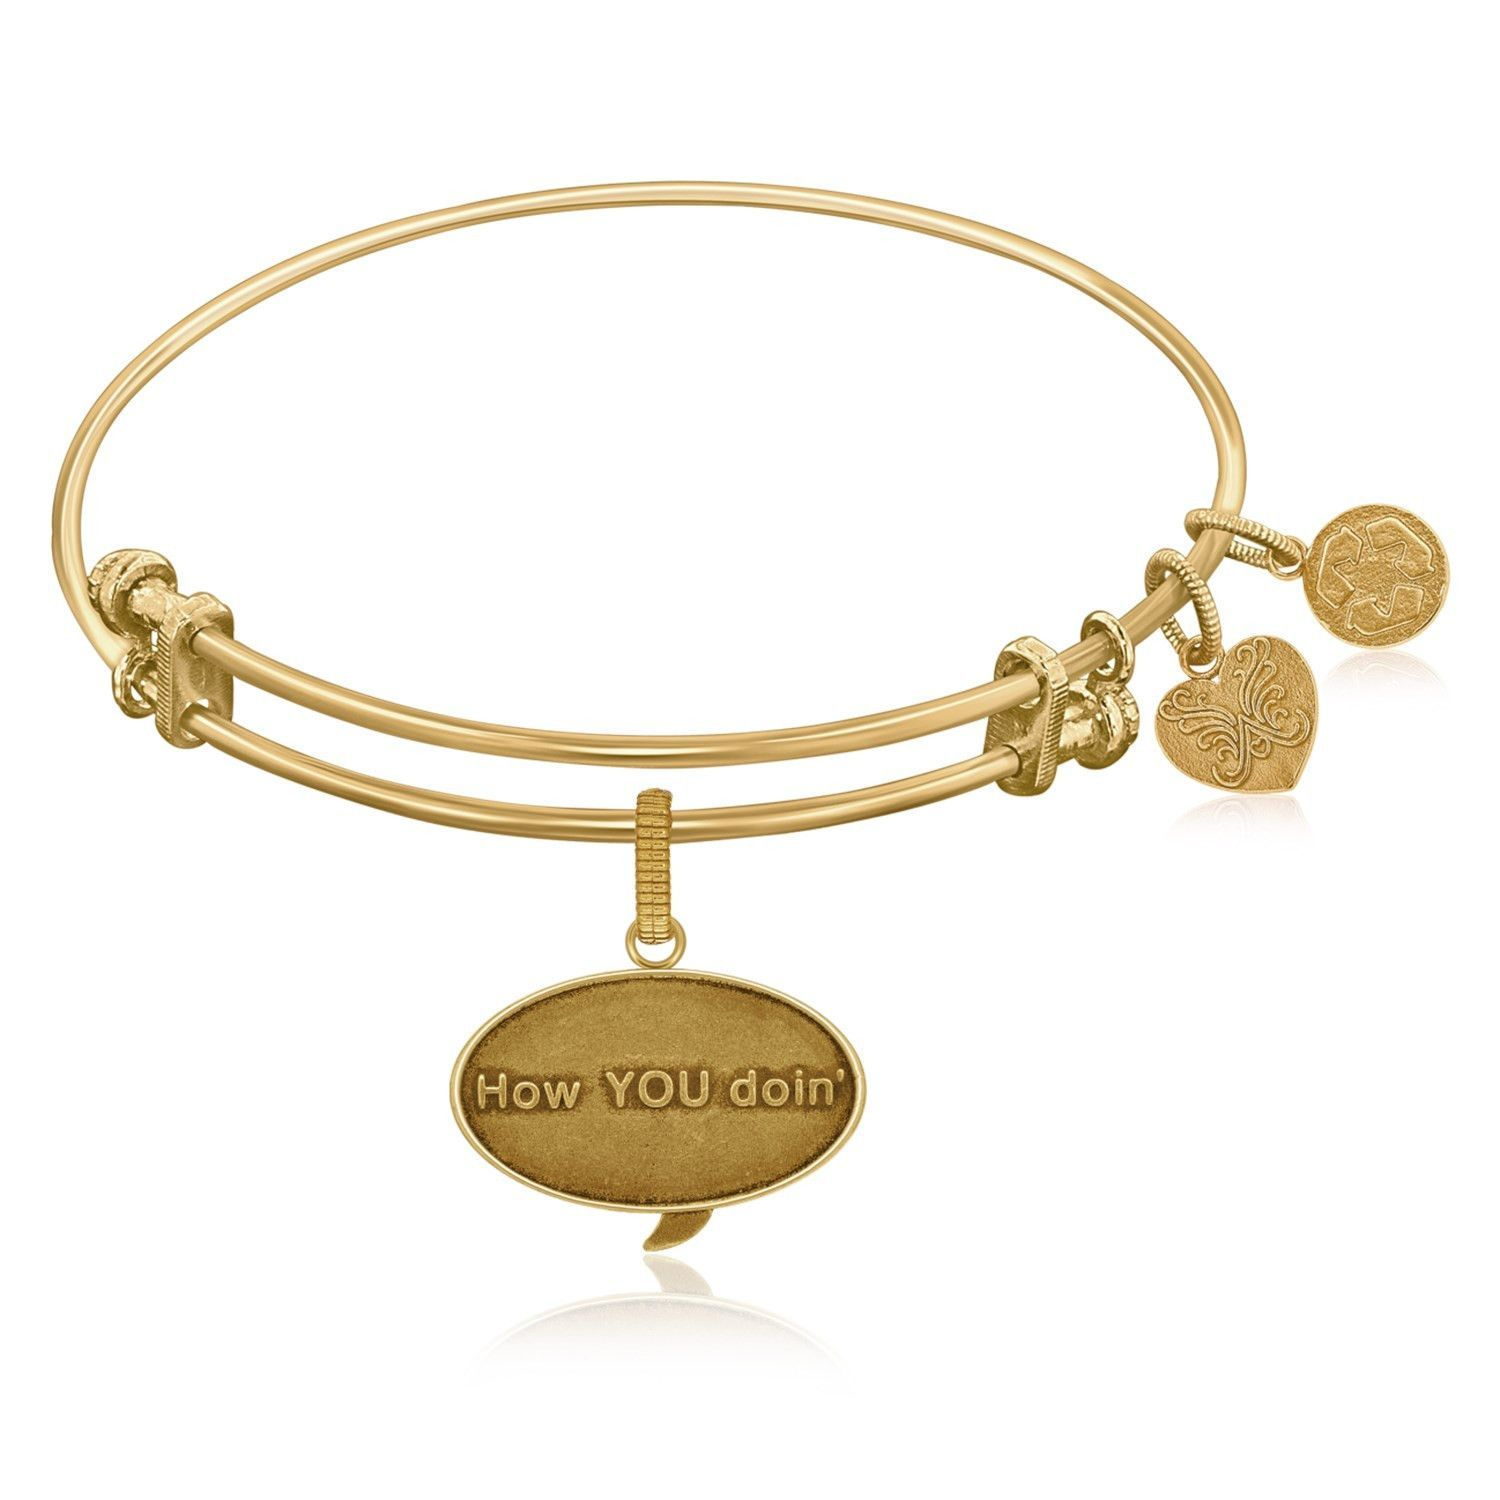 Expandable Bangle in Yellow Tone Brass with How You Doin Symbol